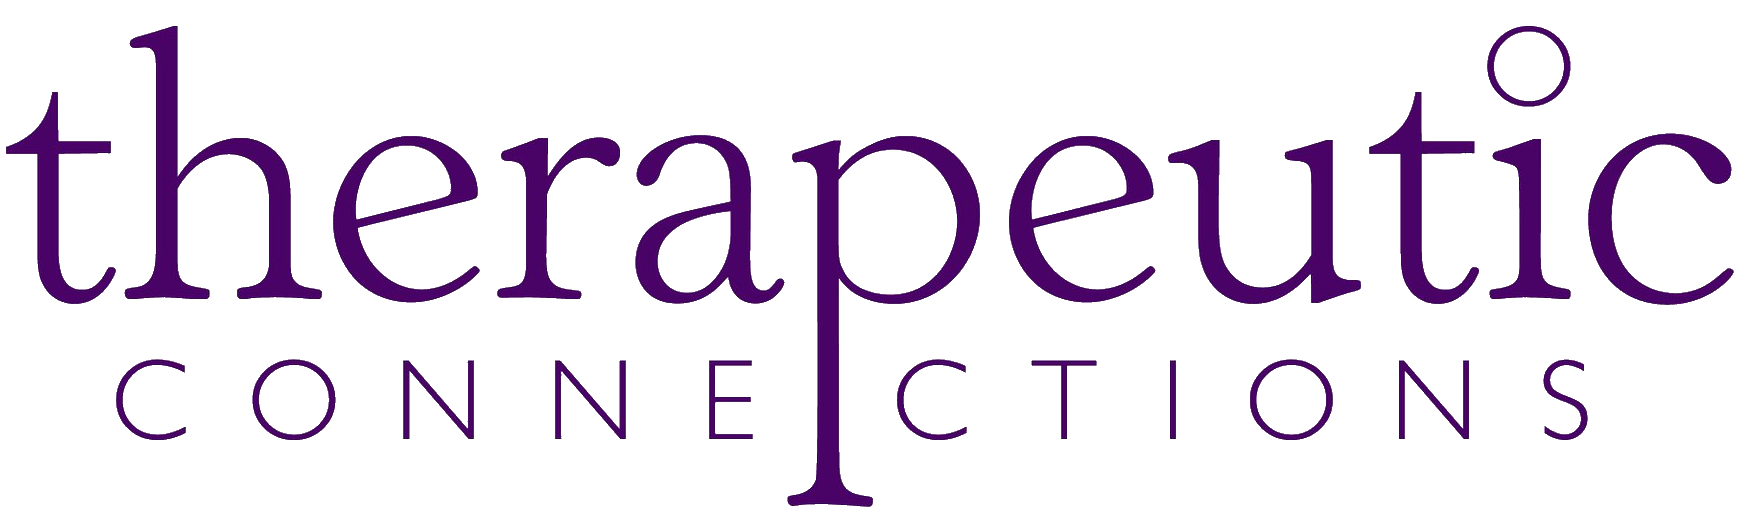 therapeutic connections logo